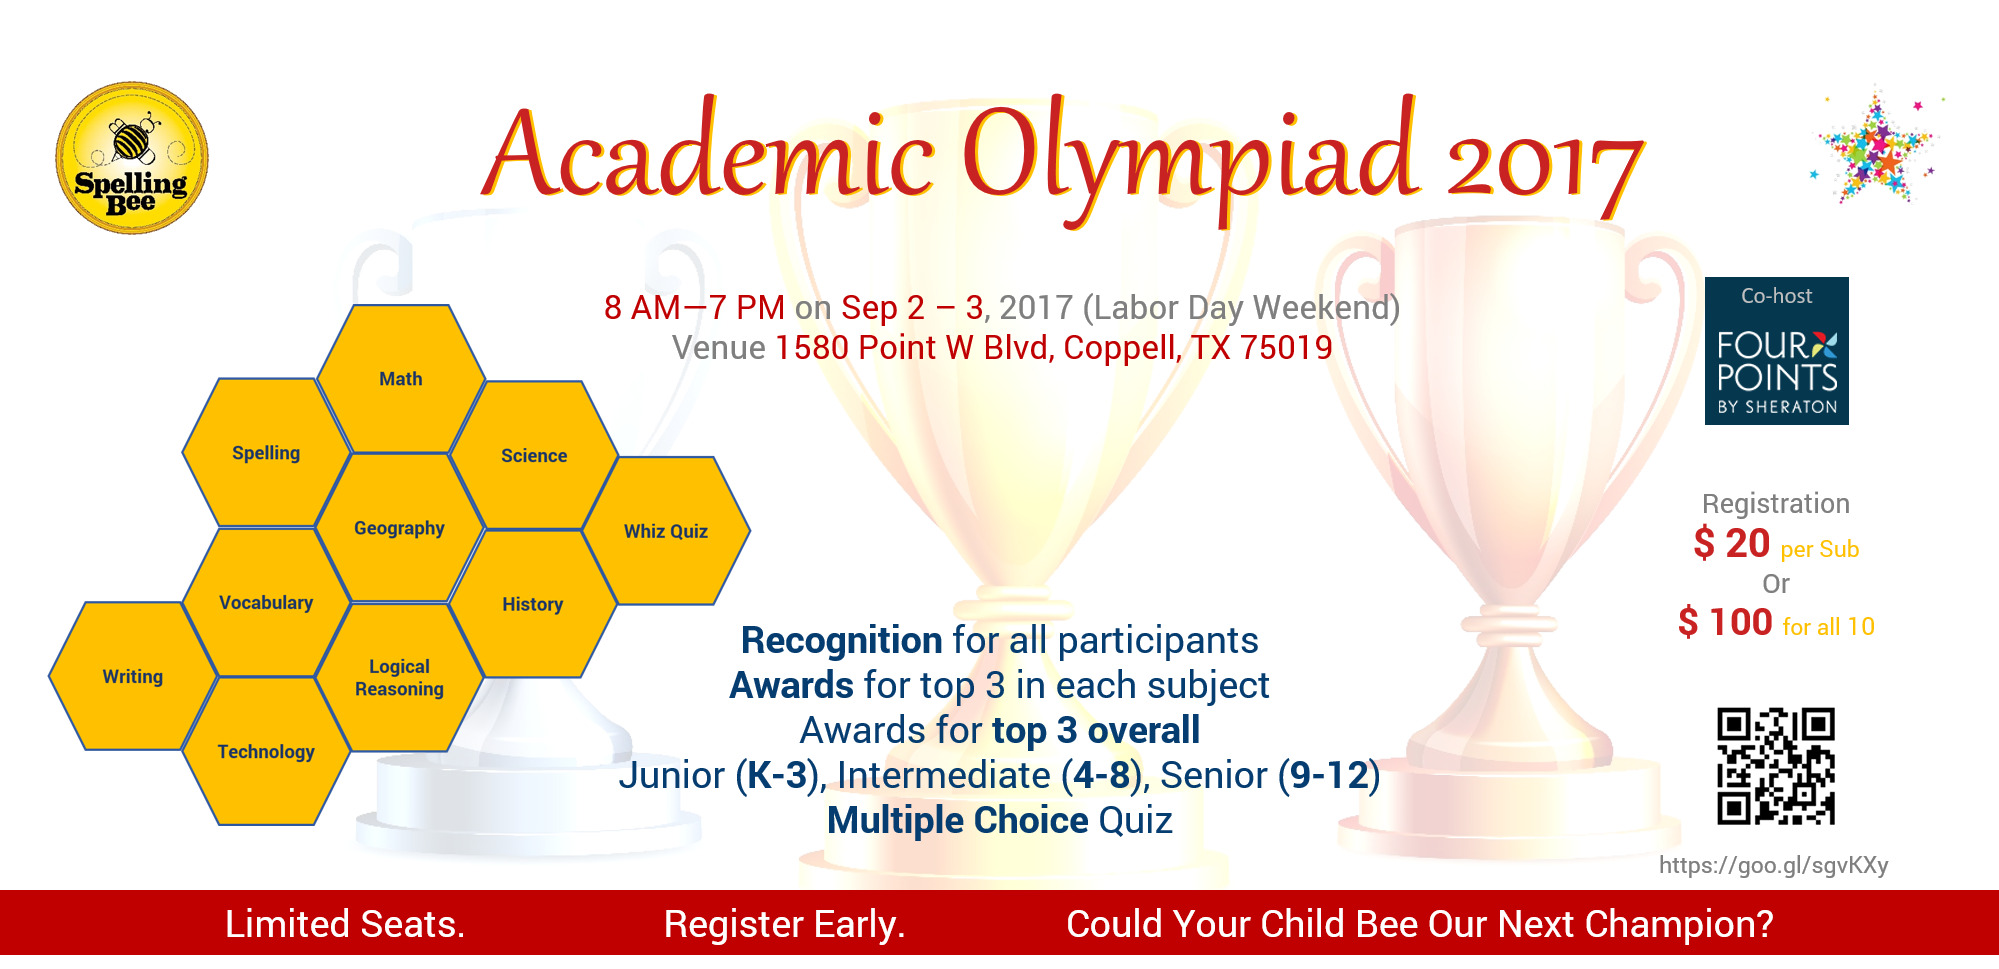 academicOlympaid2017-3